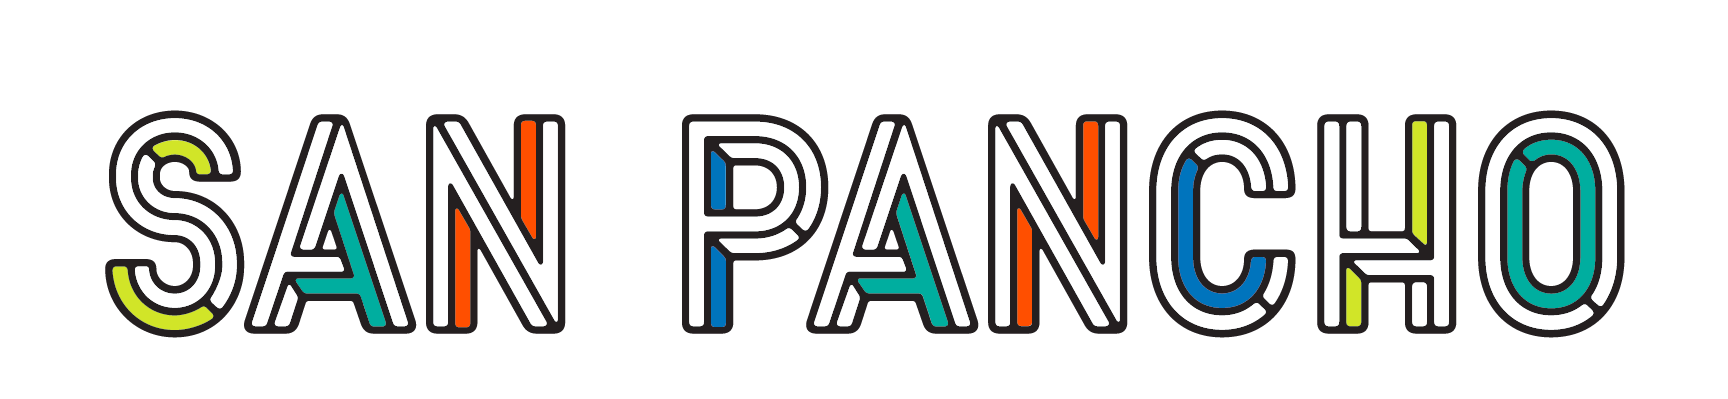 Bar San Pancho